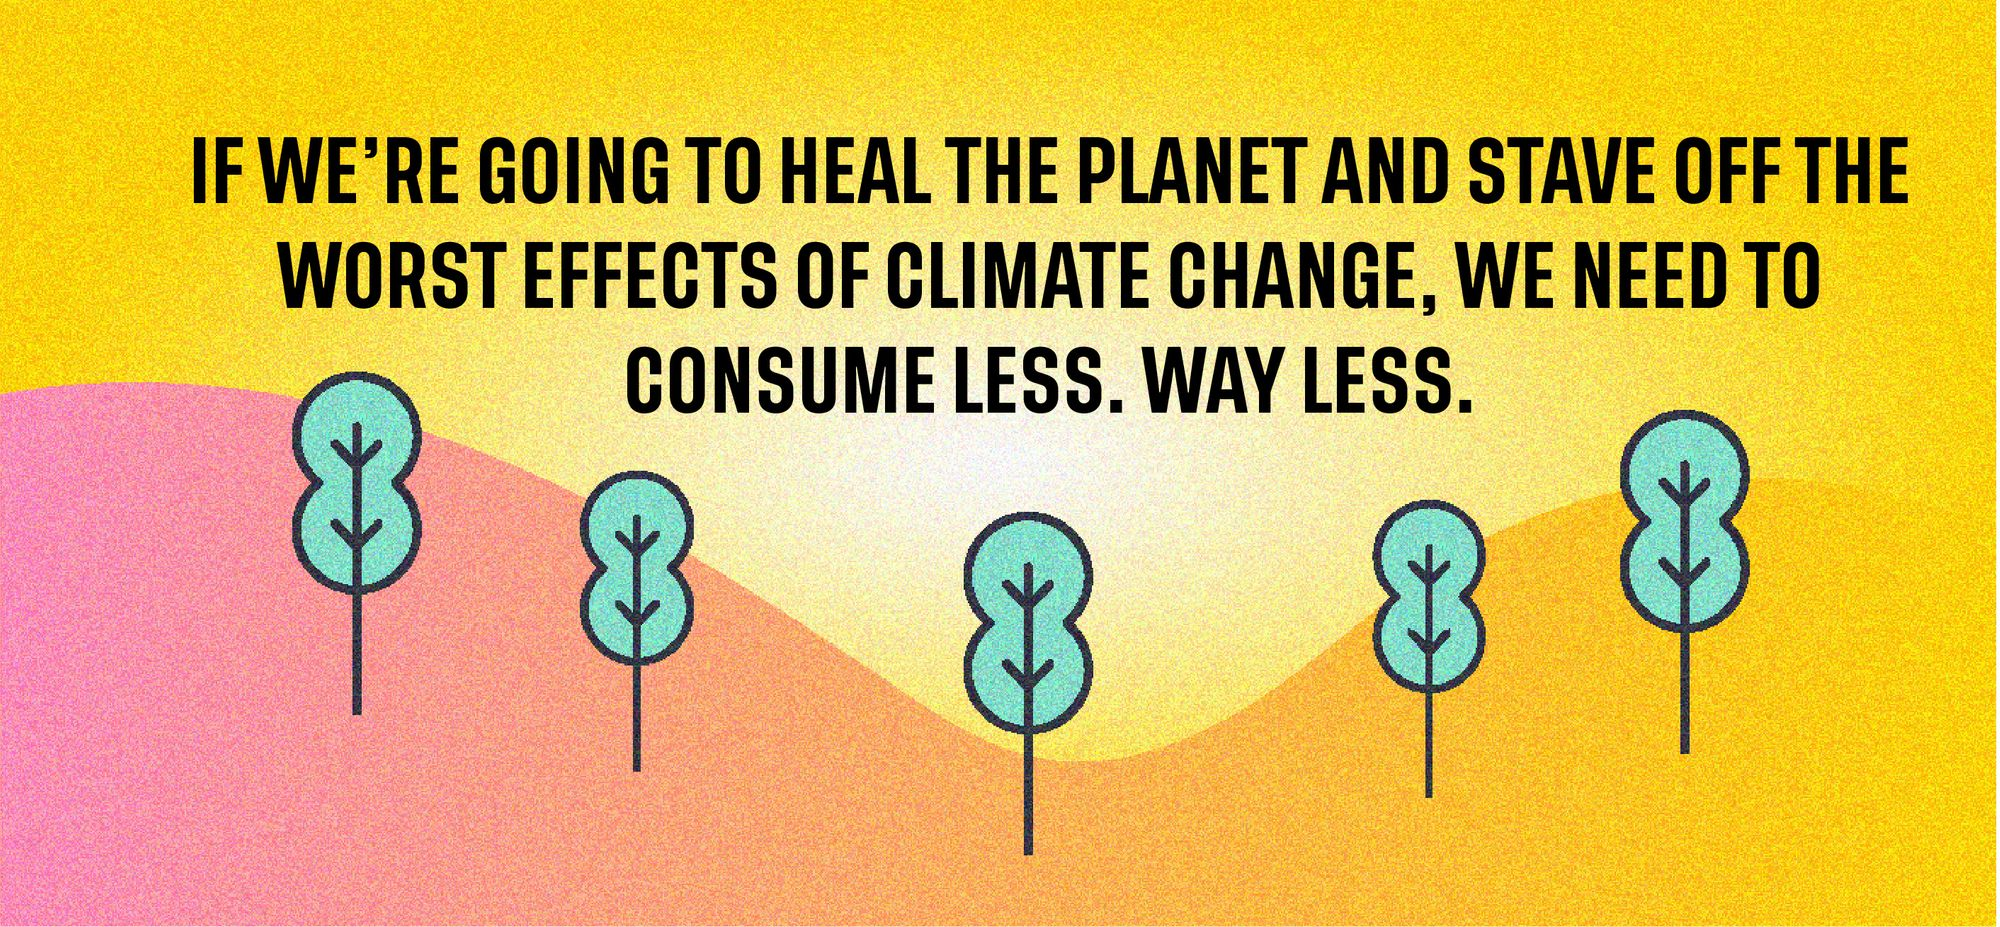 If we're going to heal the planet and stave off the worst effects of climate change, we need to change how we consume.